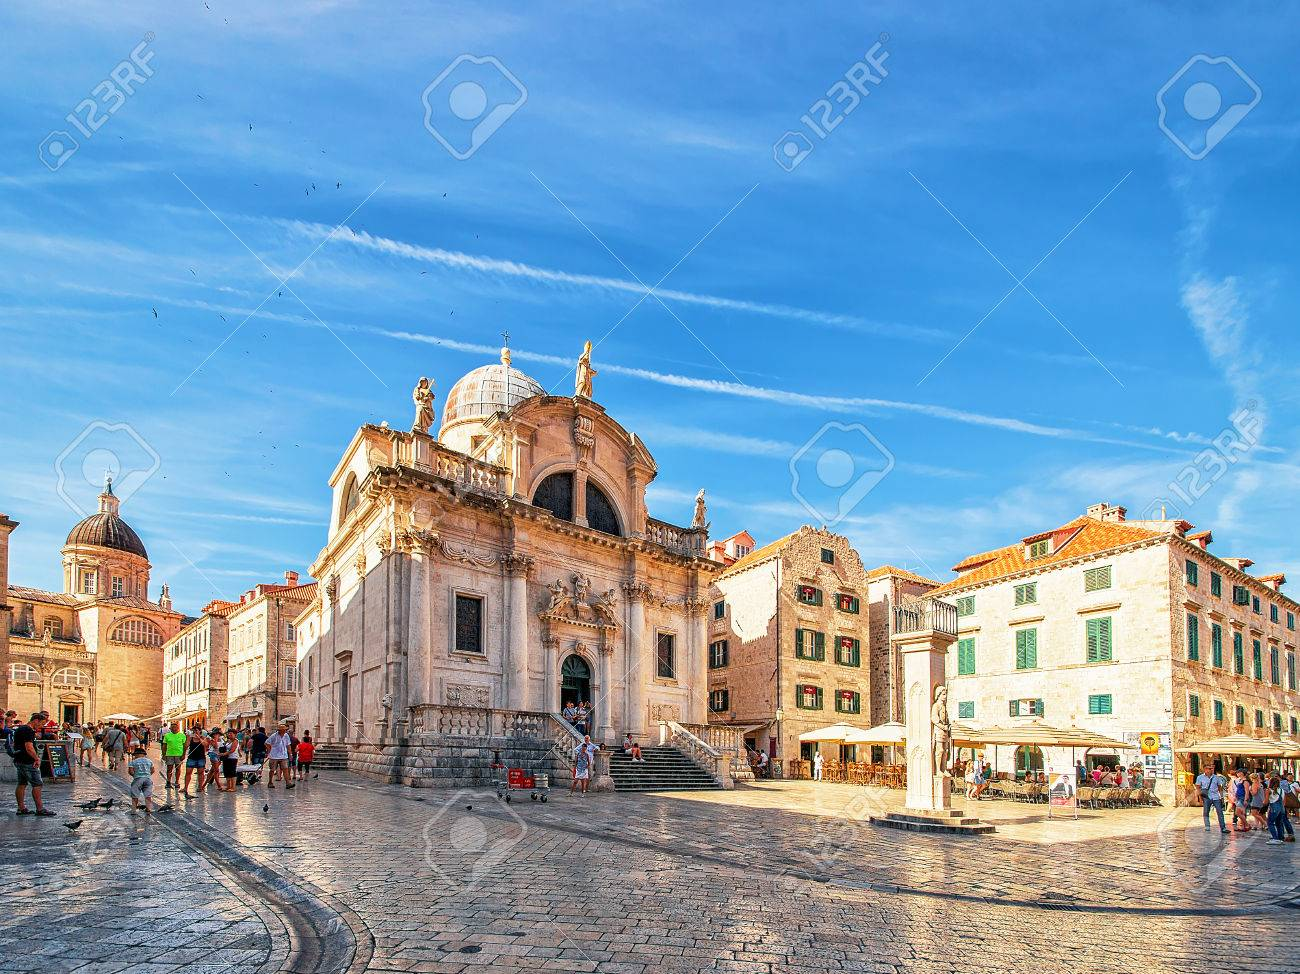 Dubrovnik, Croatia - August 20, 2016: Square at St Blaise Church and people in Stradun Street in the Old city of Dubrovnik, Croatia - 83198612